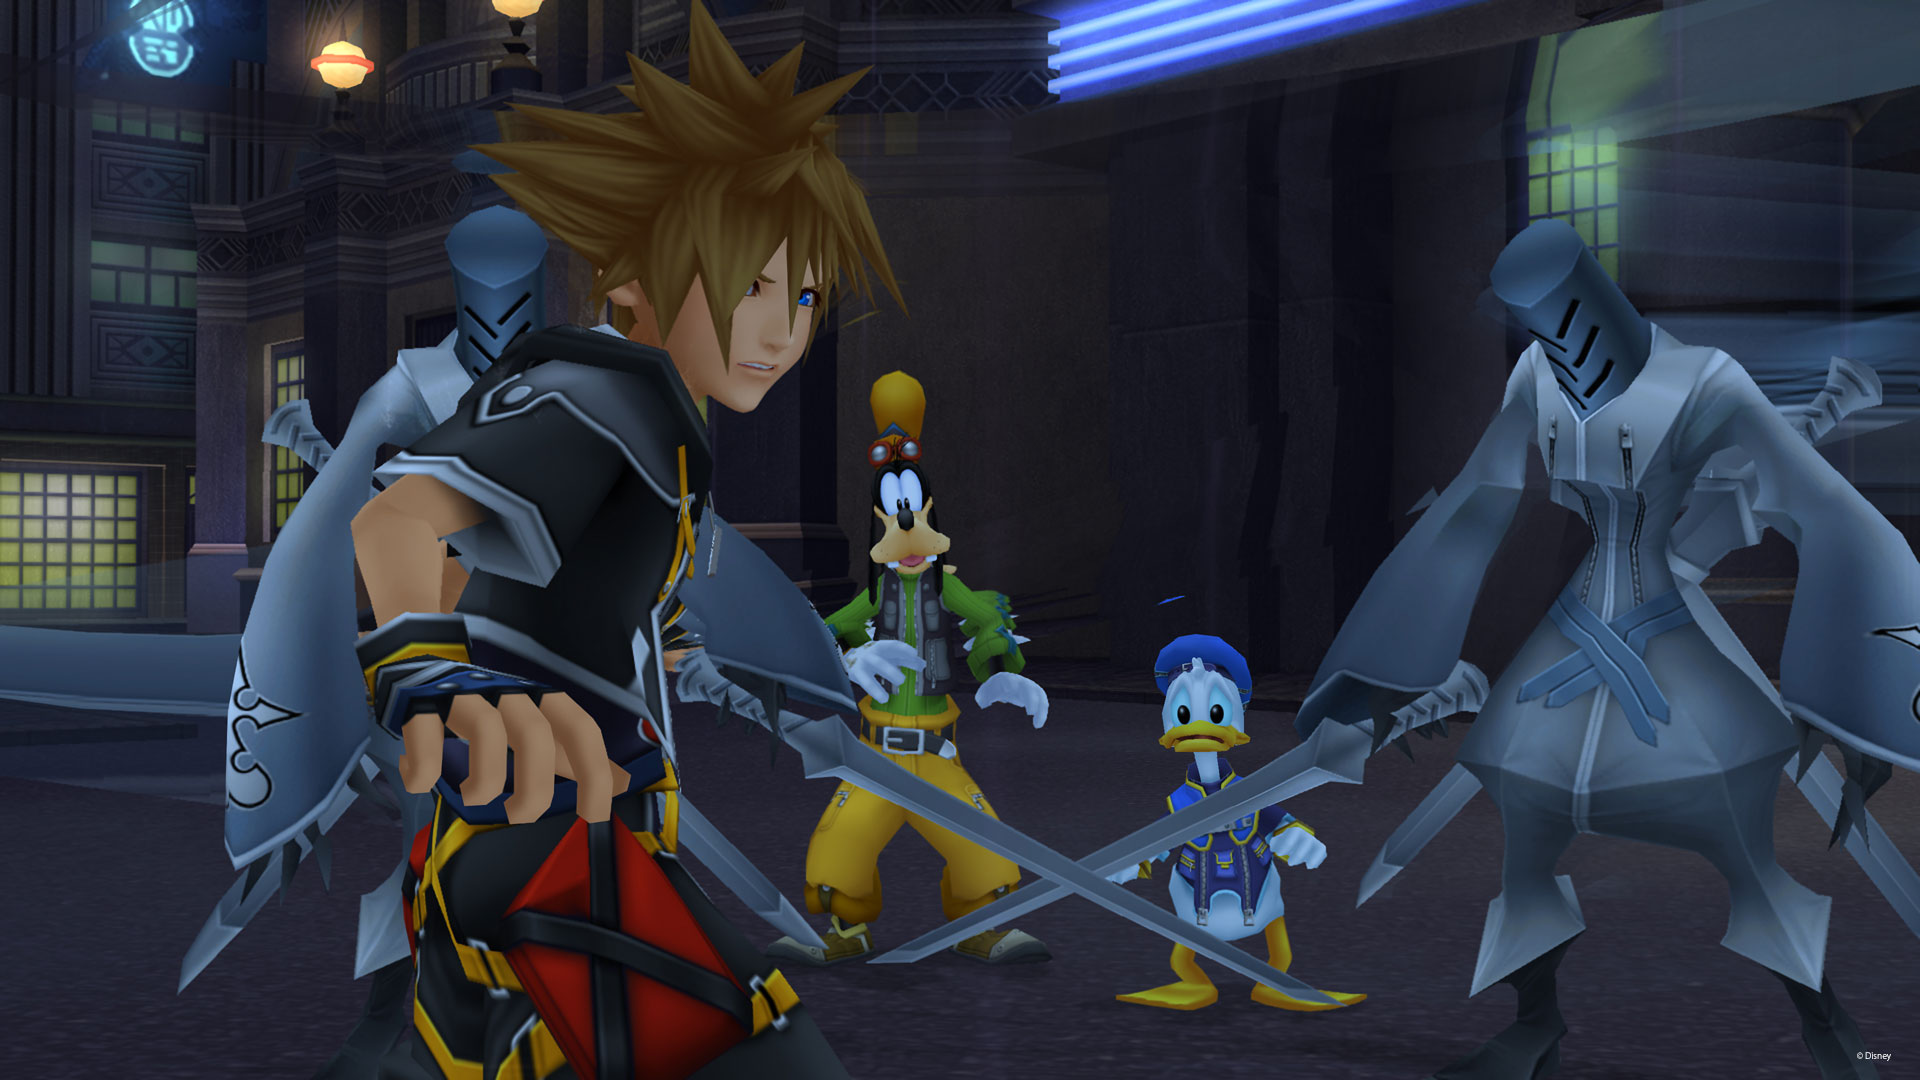 kingdom hearts relationship essay For kingdom hearts 3d: dream drop distance on the 3ds, a gamefaqs message board topic titled why did kindom hearts get so complicated over the years - page 4.